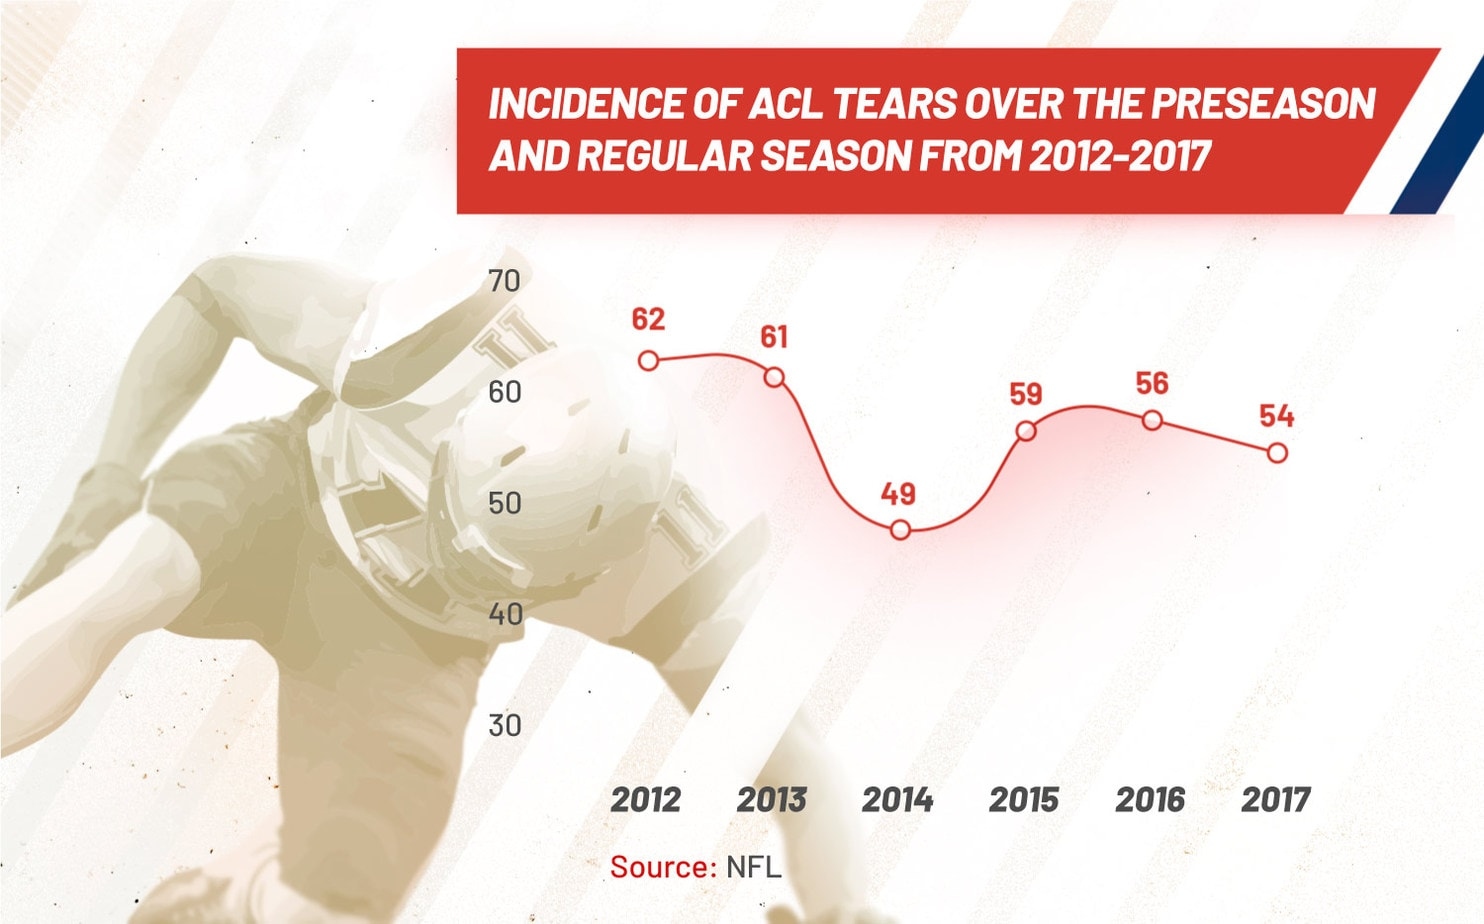 NFL acl tears